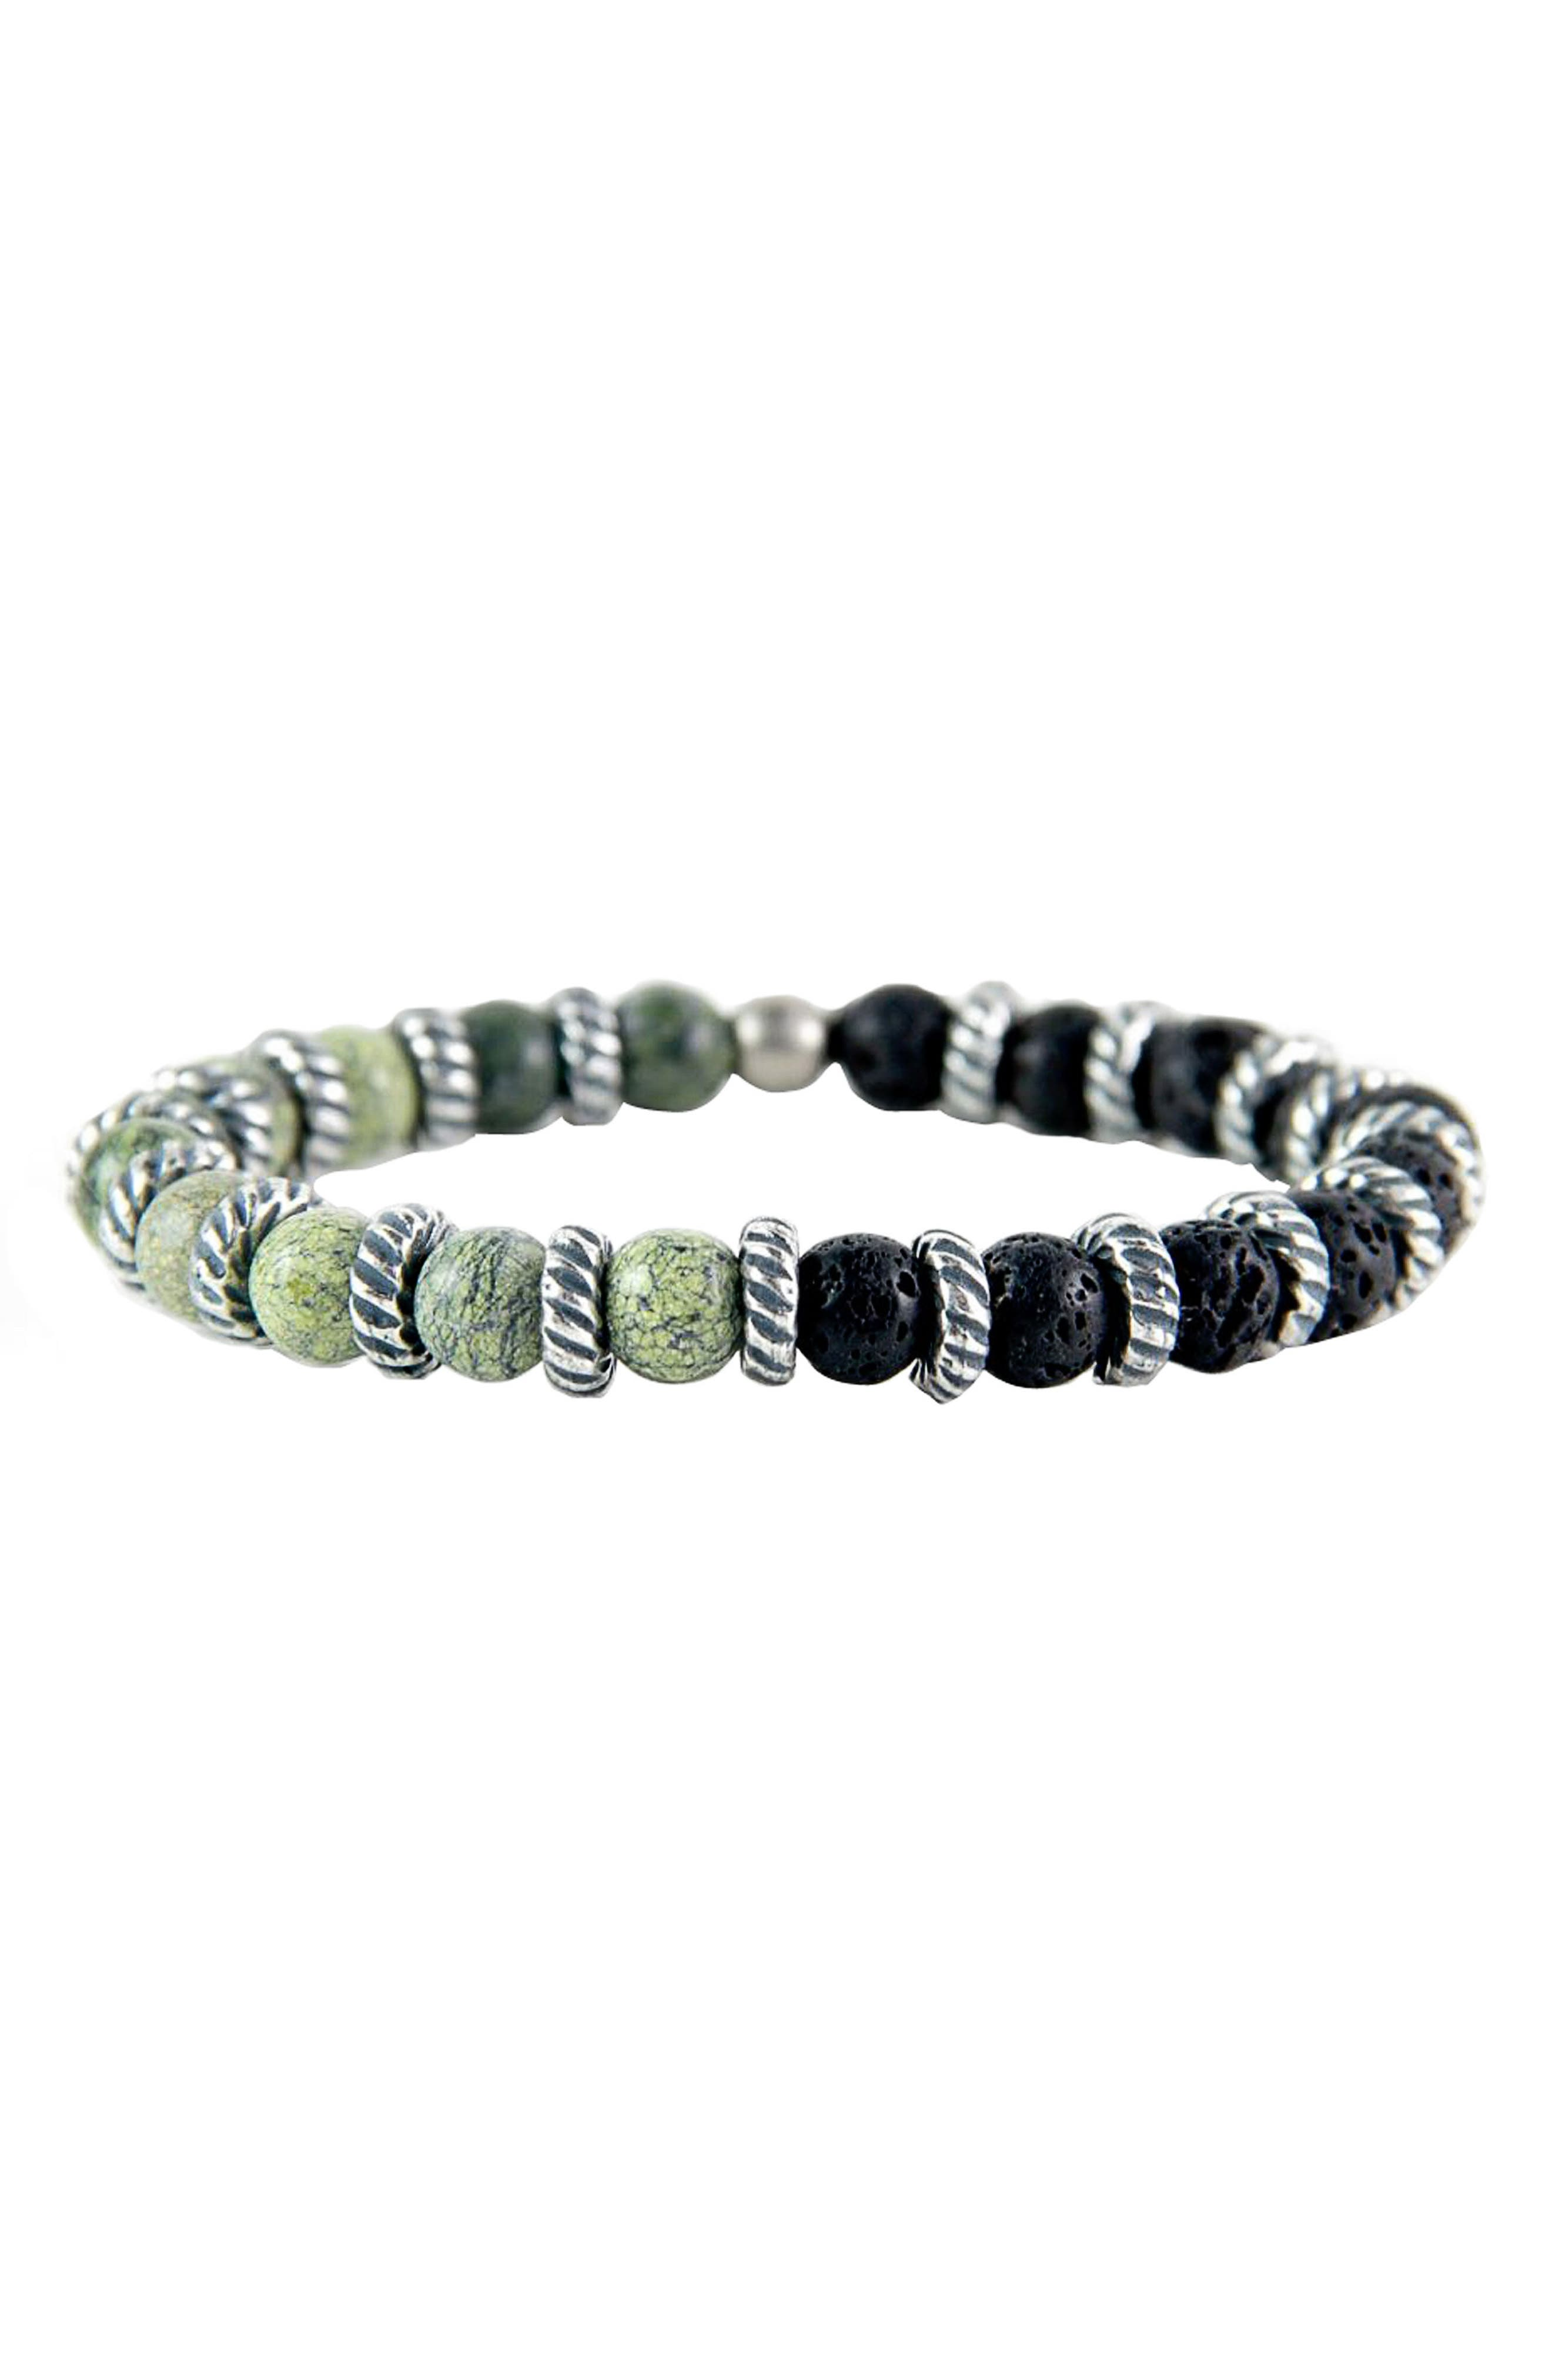 Serpentine Lava Stretch Bracelet,                             Main thumbnail 1, color,                             300